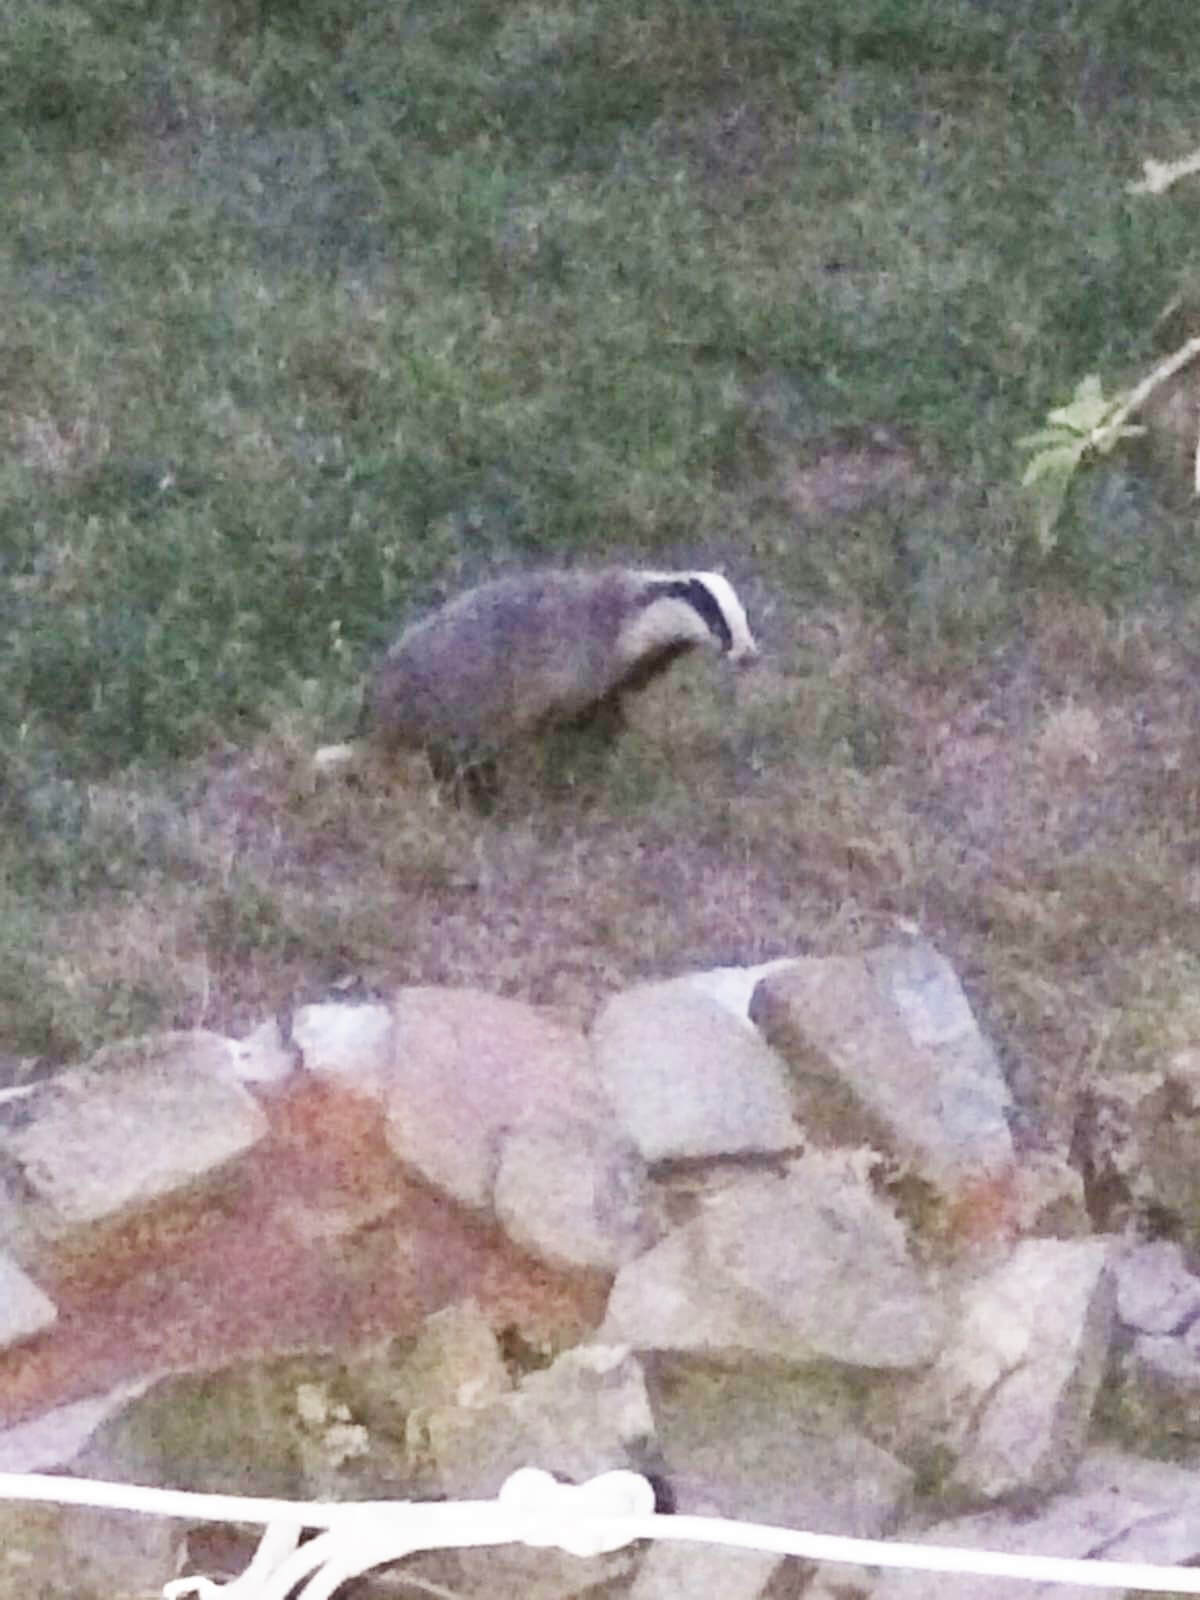 The daily visitor, a Badger in the garden.